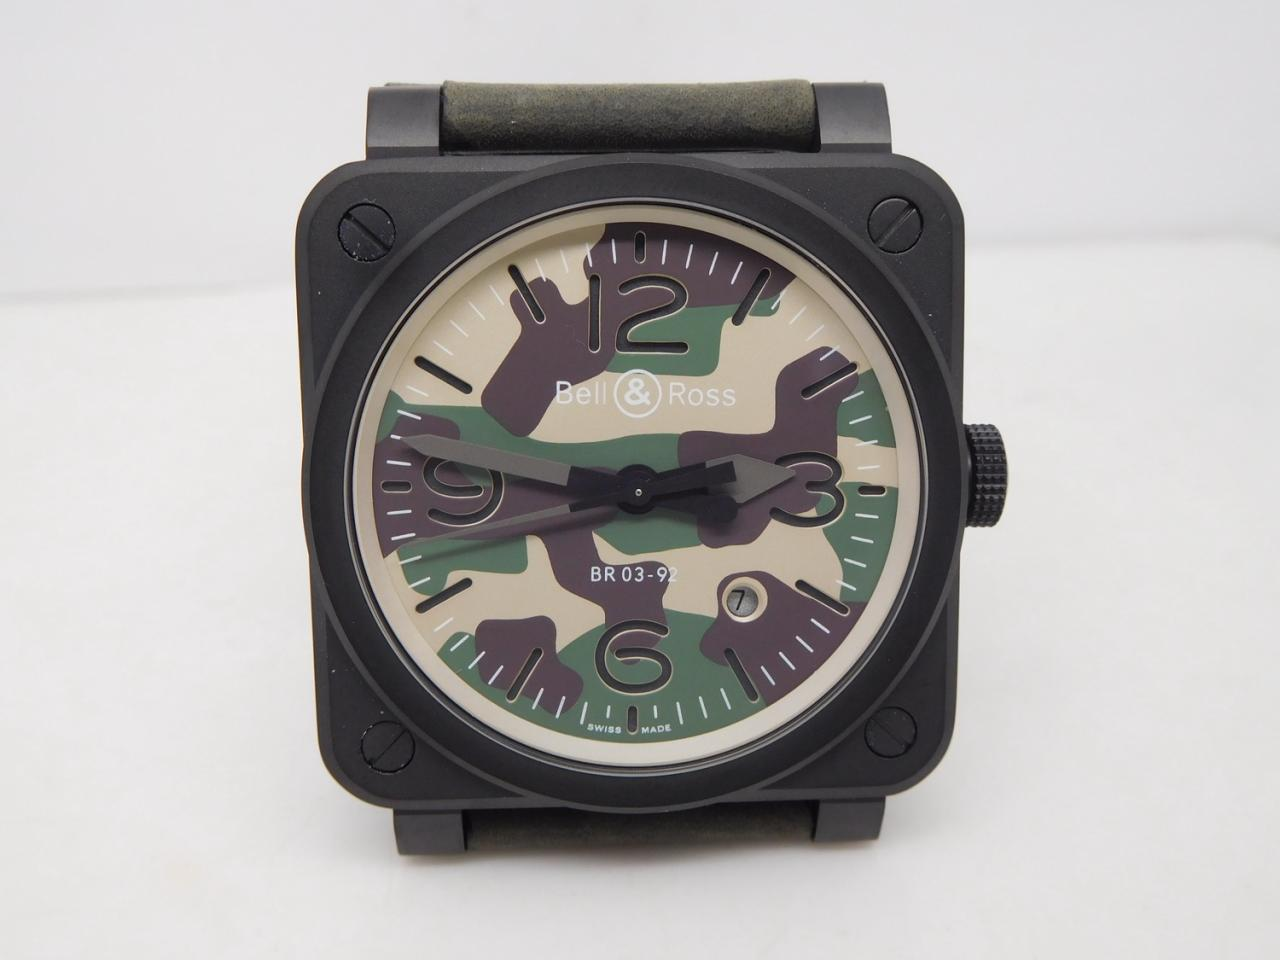 Replica Bell Ross BR03-92 Camo PVD Black